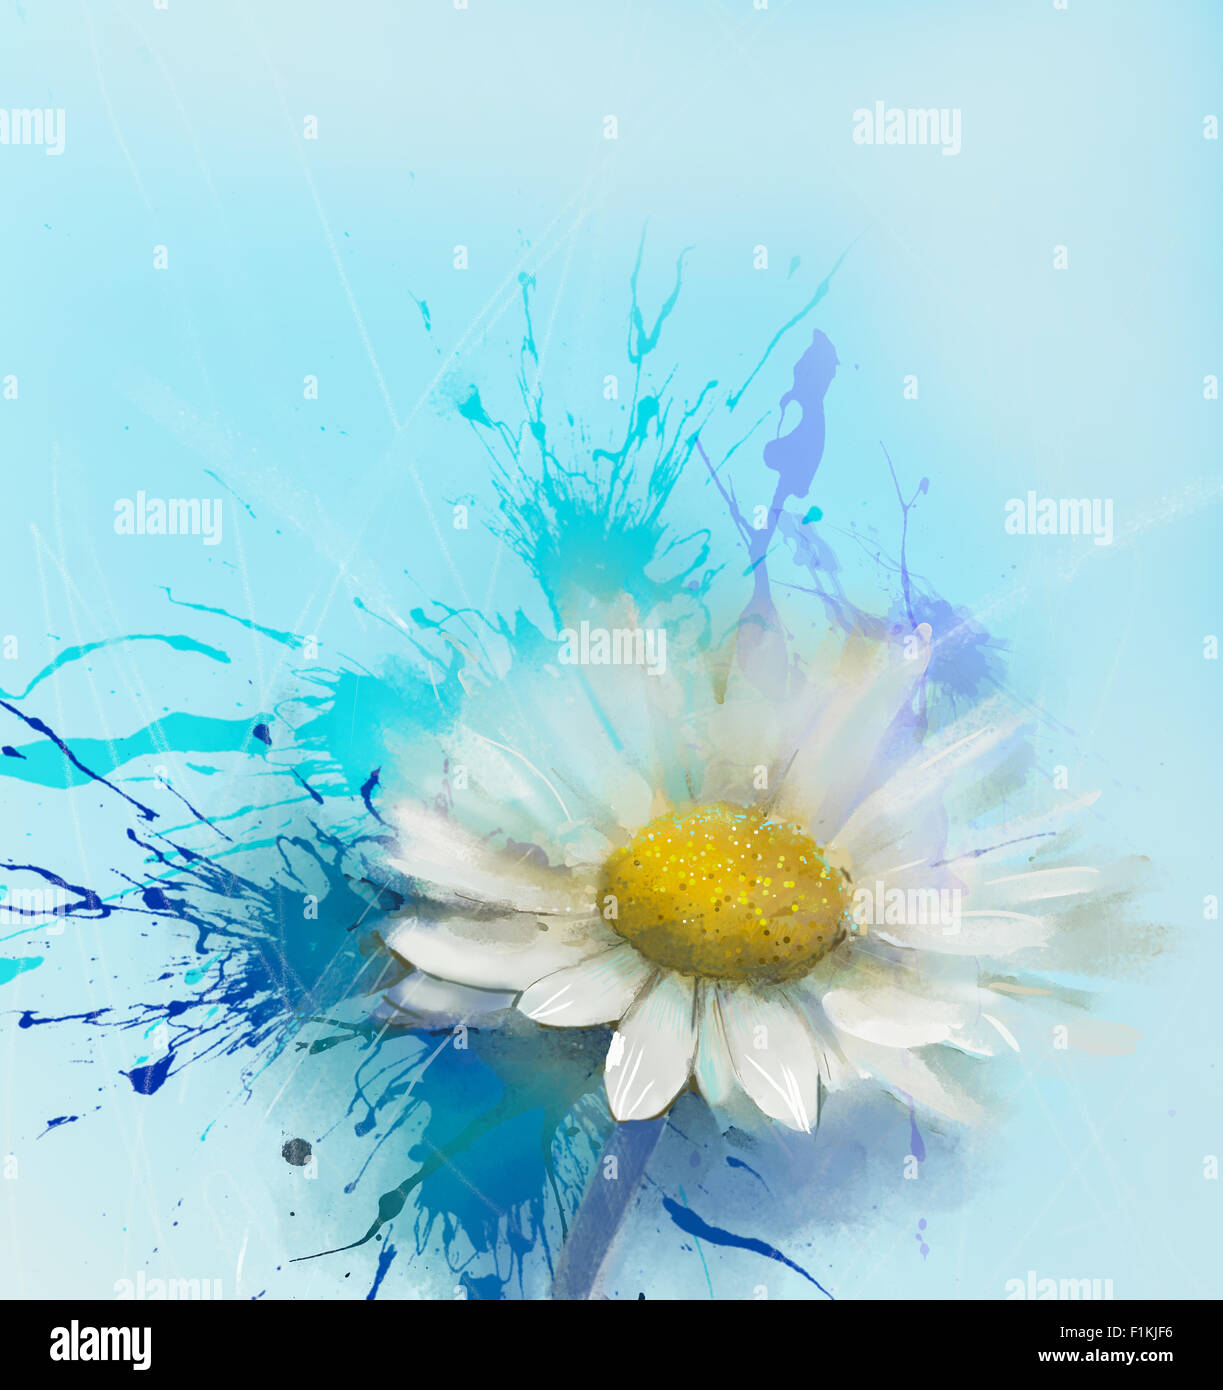 Abstract White Daisy Flower Oil Painting With Blue Space For Design